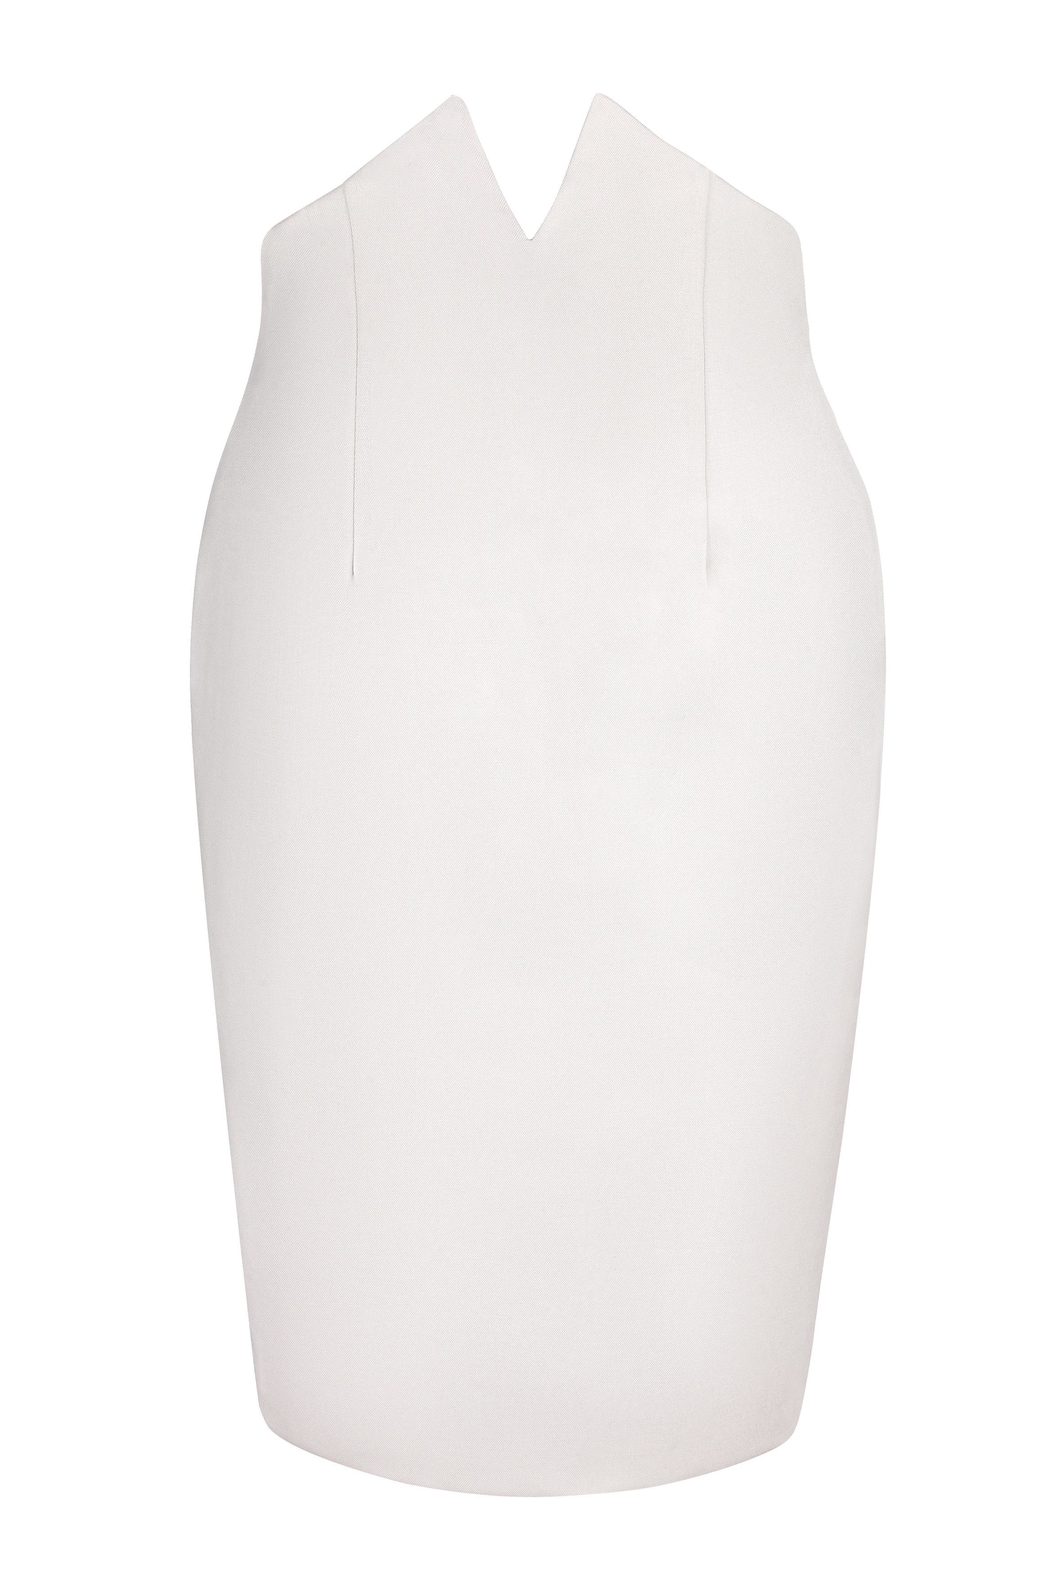 Yona New York Tori Notch Pencil Skirt / Off White - Front Cropped Image